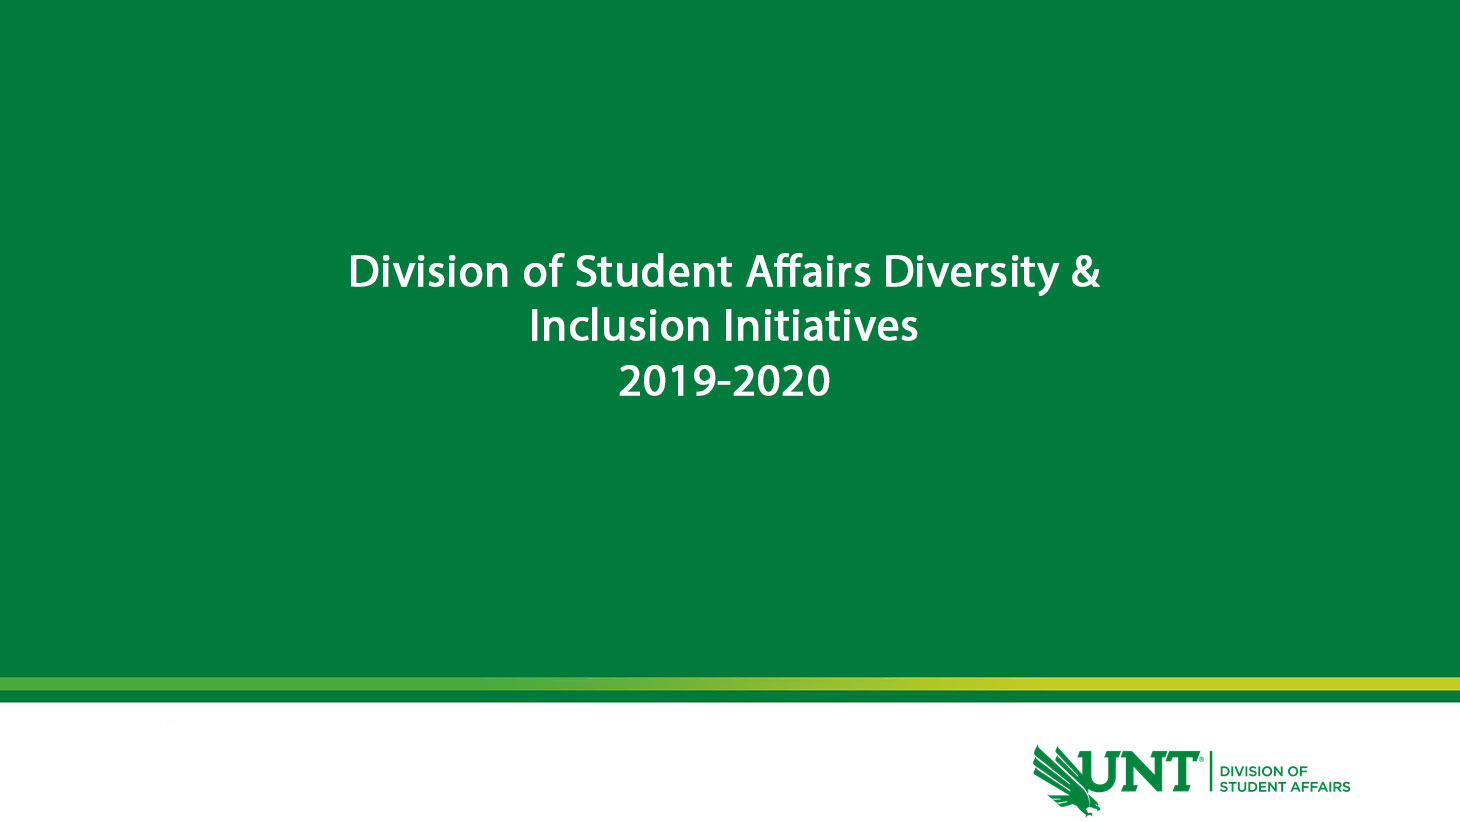 Division of Student Affairs - Diversity and Inclusion Initiatives - 2019-2020